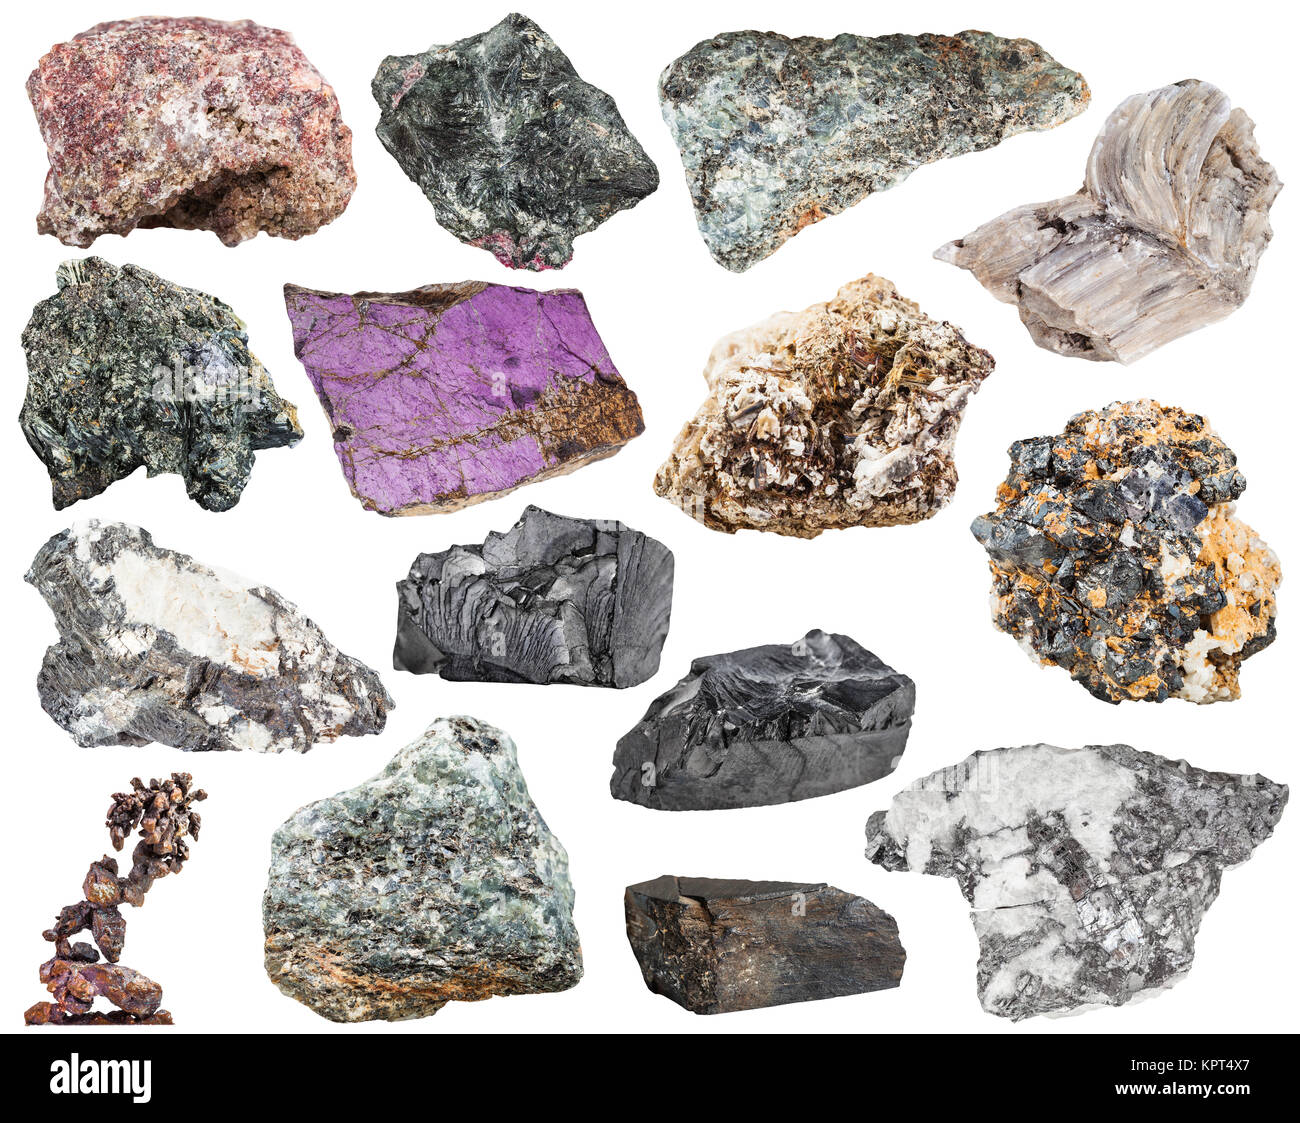 set of various natural mineral stones and rocks - baryte, barite, bismuthinite, bismuth, molybdenite, glaucophane, - Stock Image